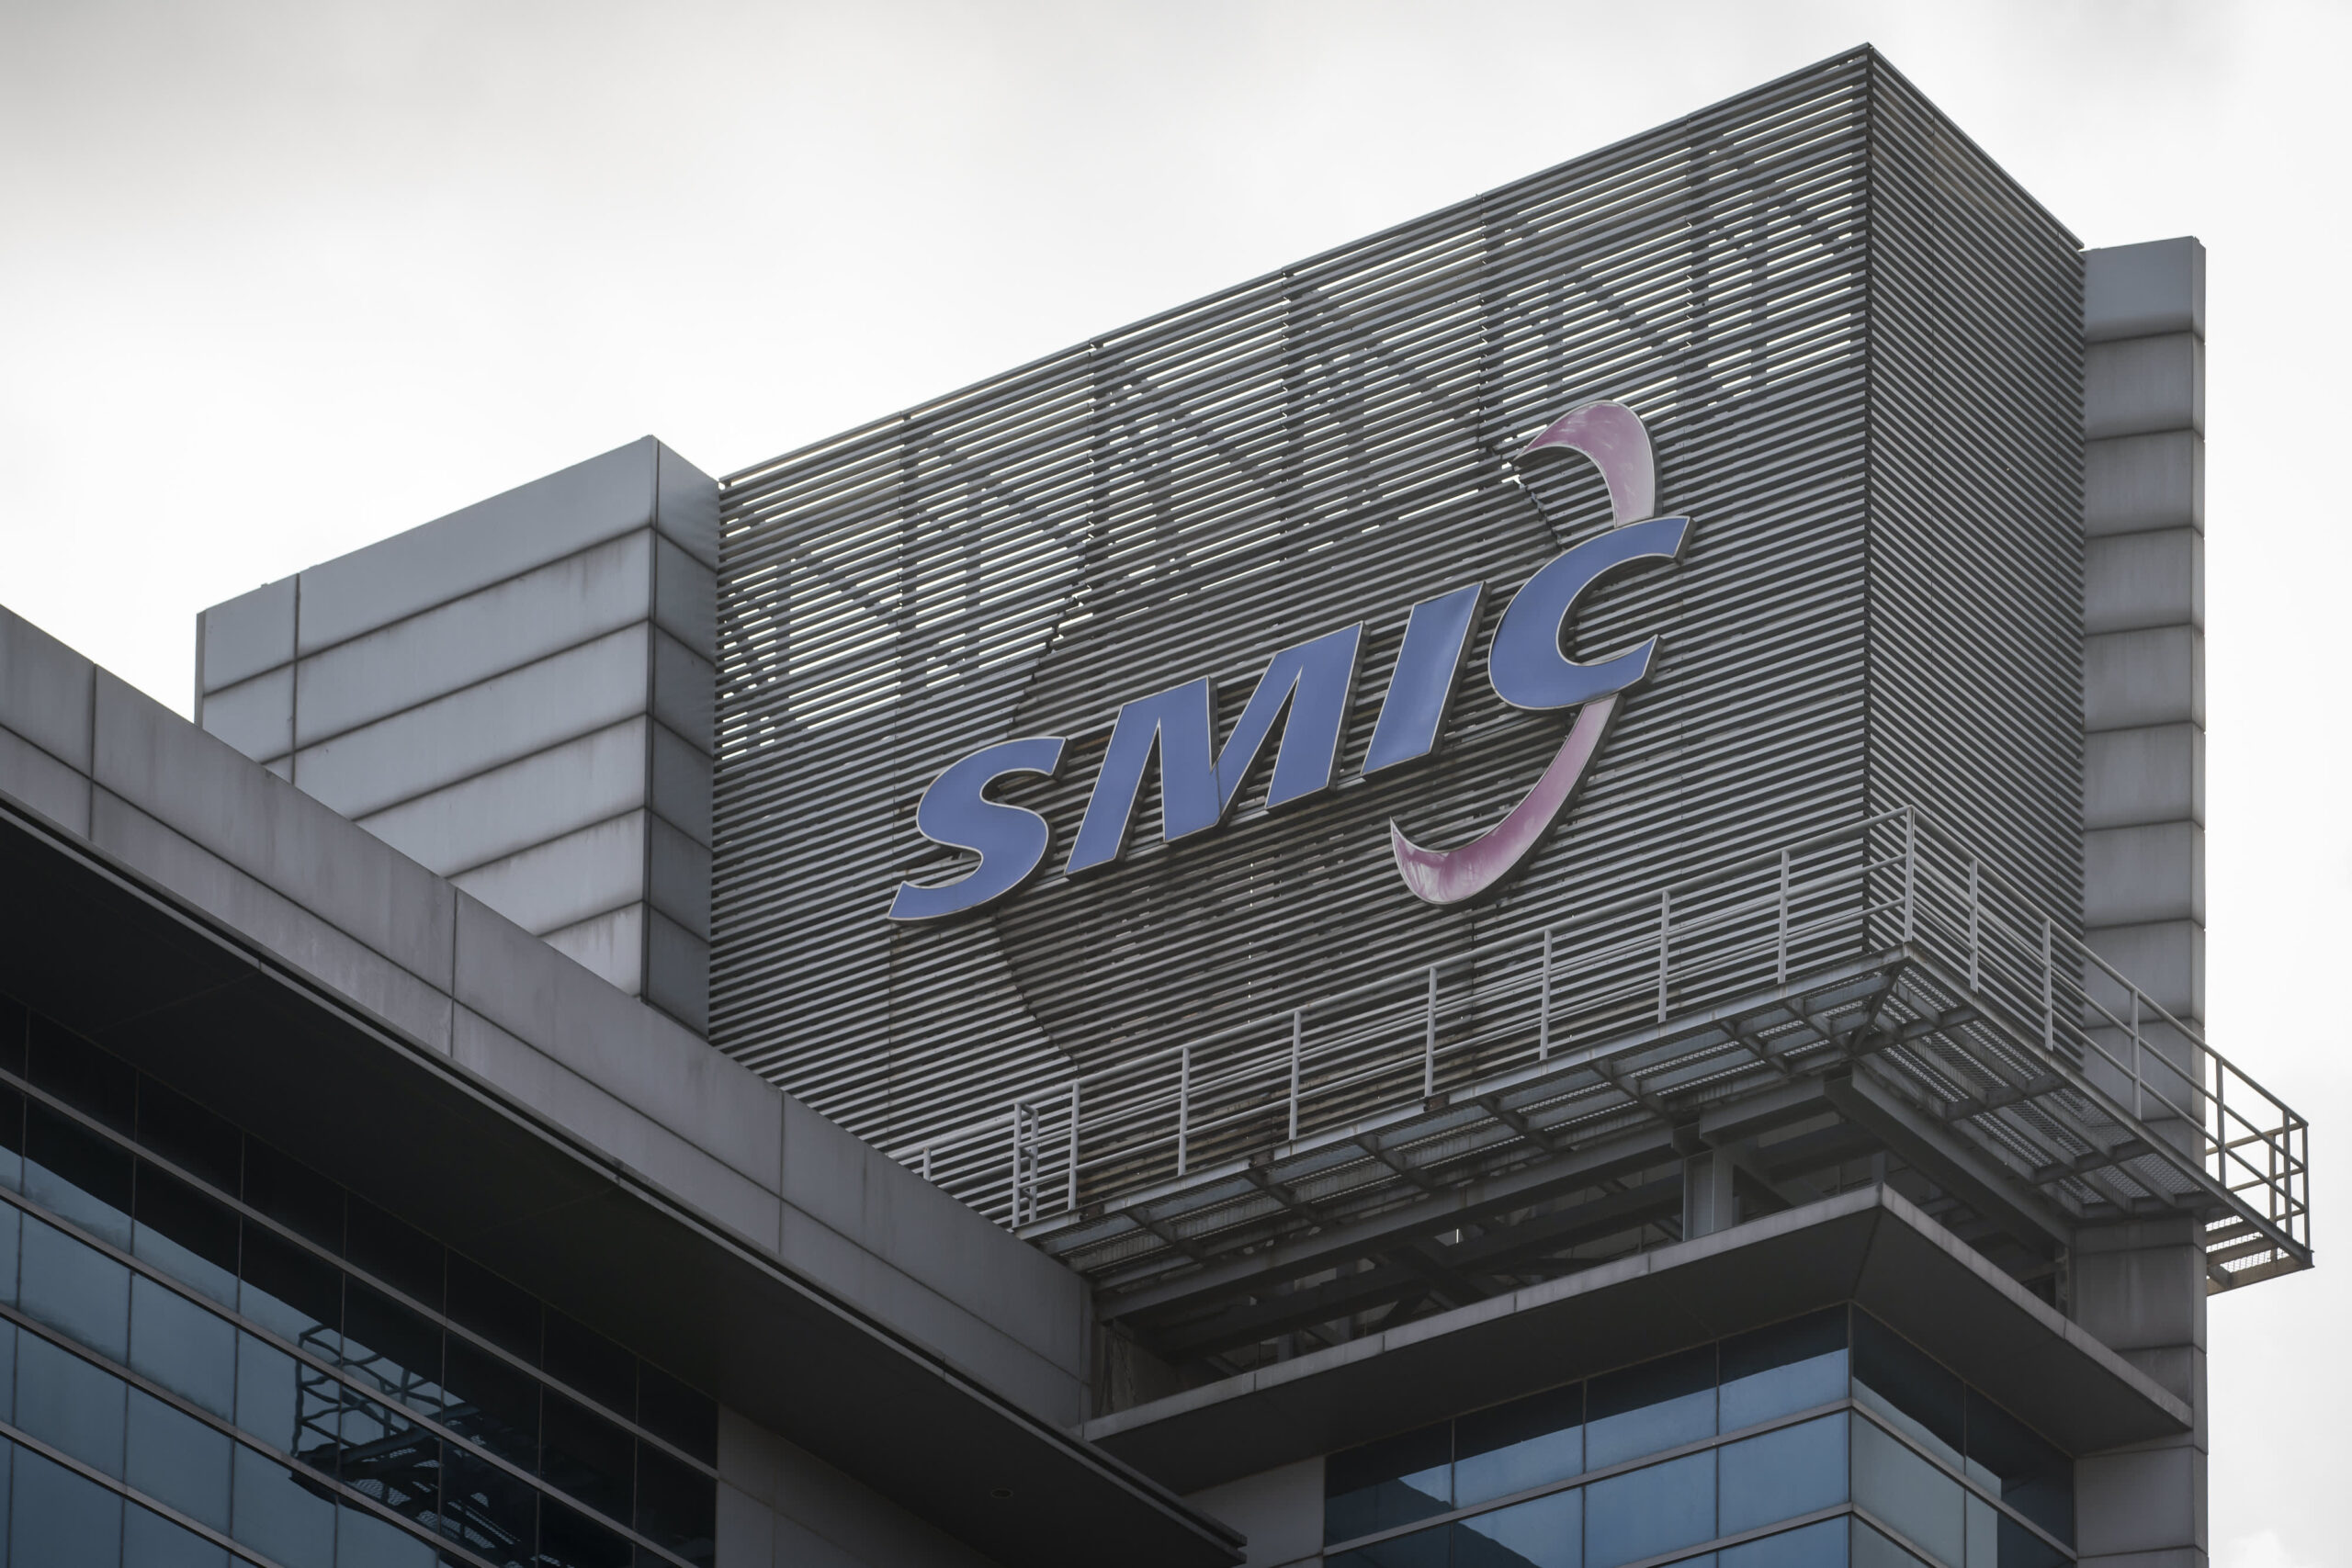 China's top semiconductor maker SMIC to build a $2.35 billion plant